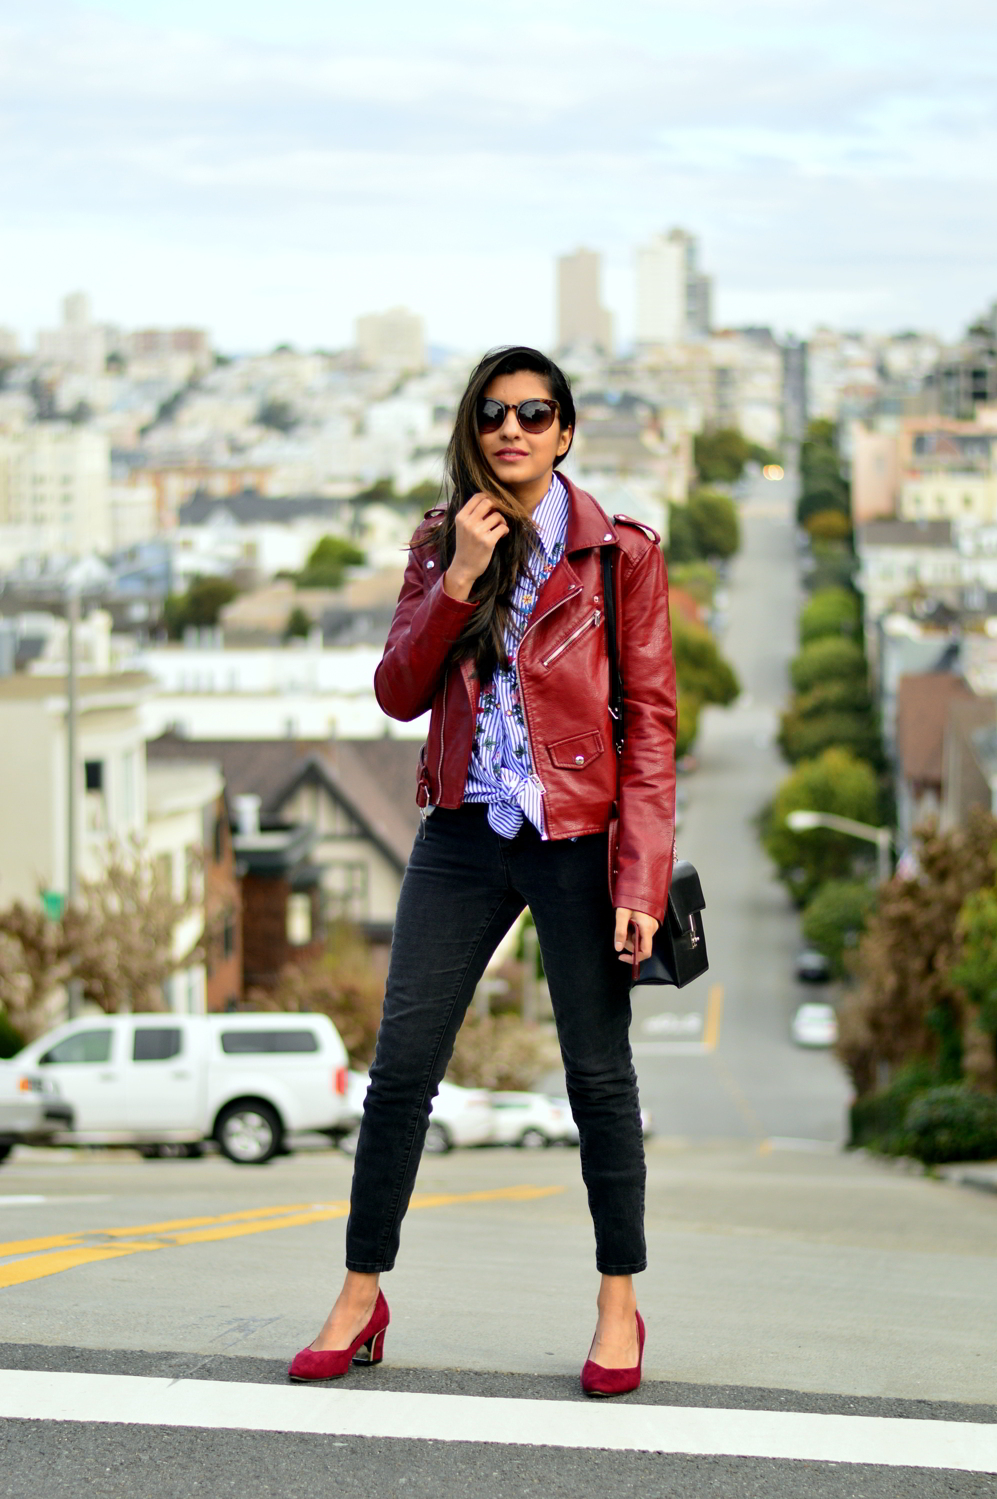 embroidered-classic-buttondown-striped-shirt-leather-jacket-burgundy-winter-san-francisco-style 1